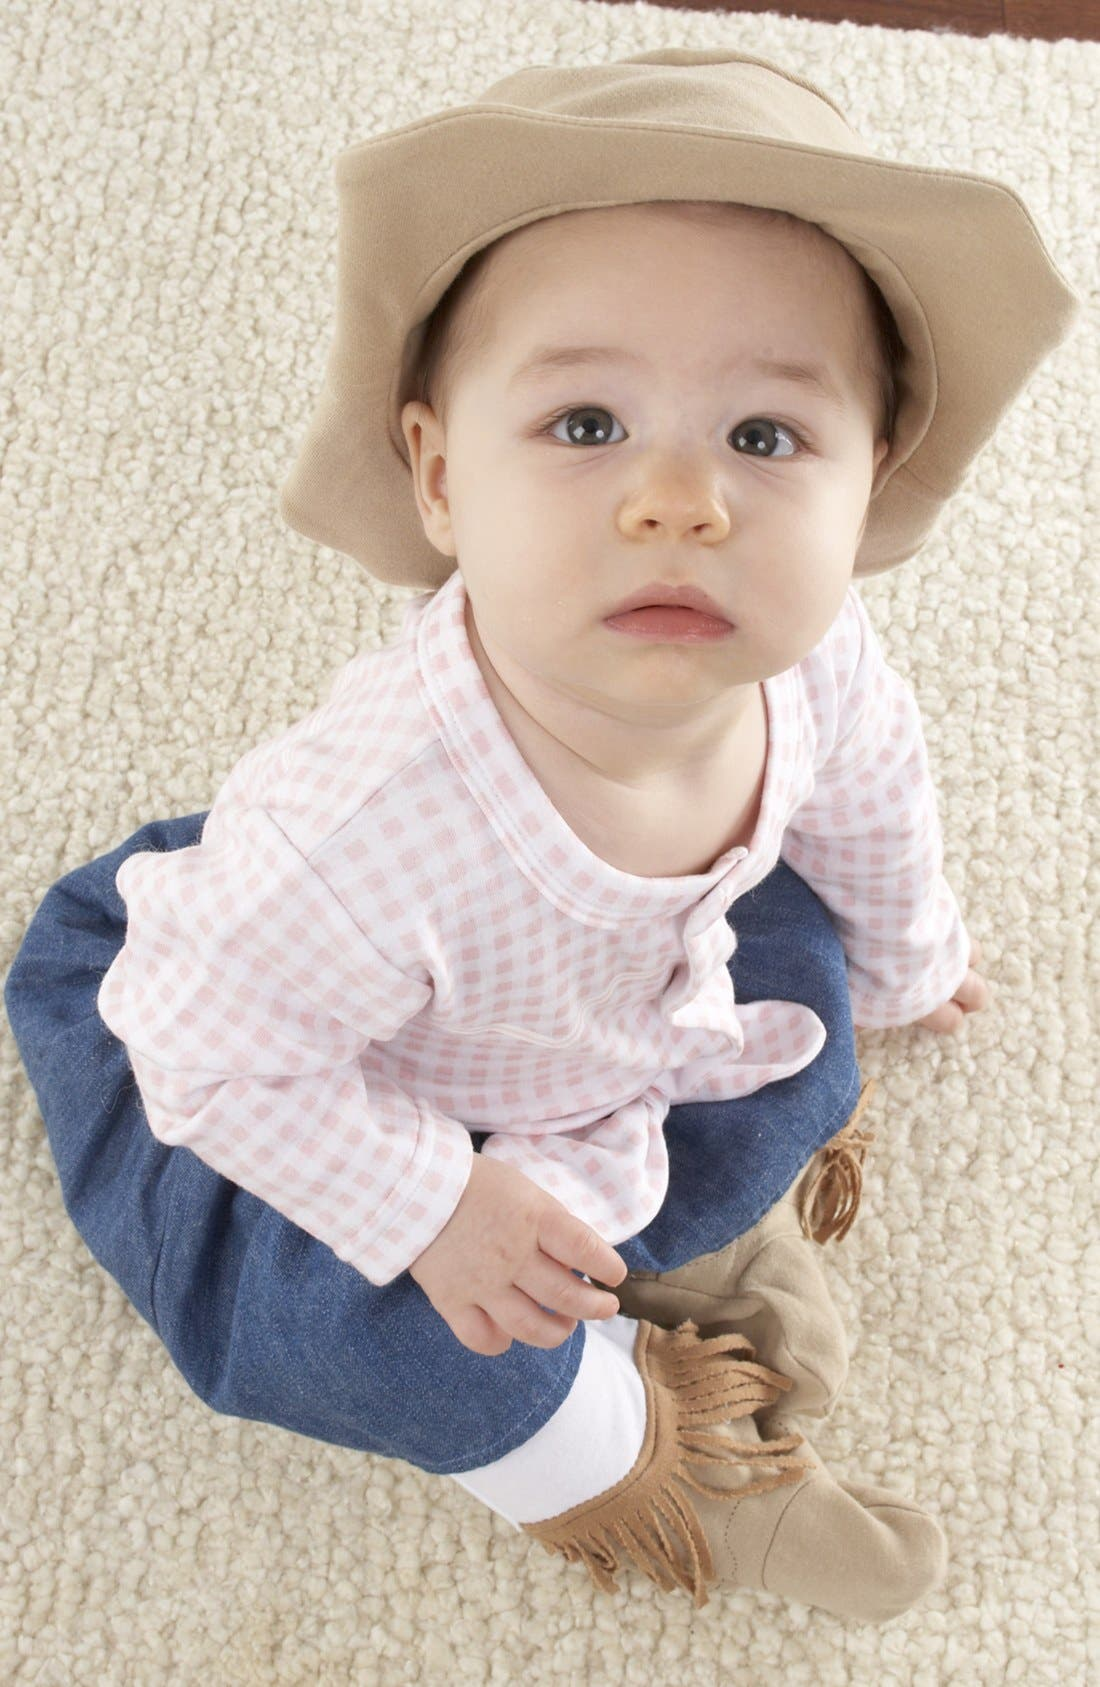 Alternate Image 1 Selected - Baby Aspen 'Big Dreamzzz - Cowgirl' One-Piece & Hat (Baby)